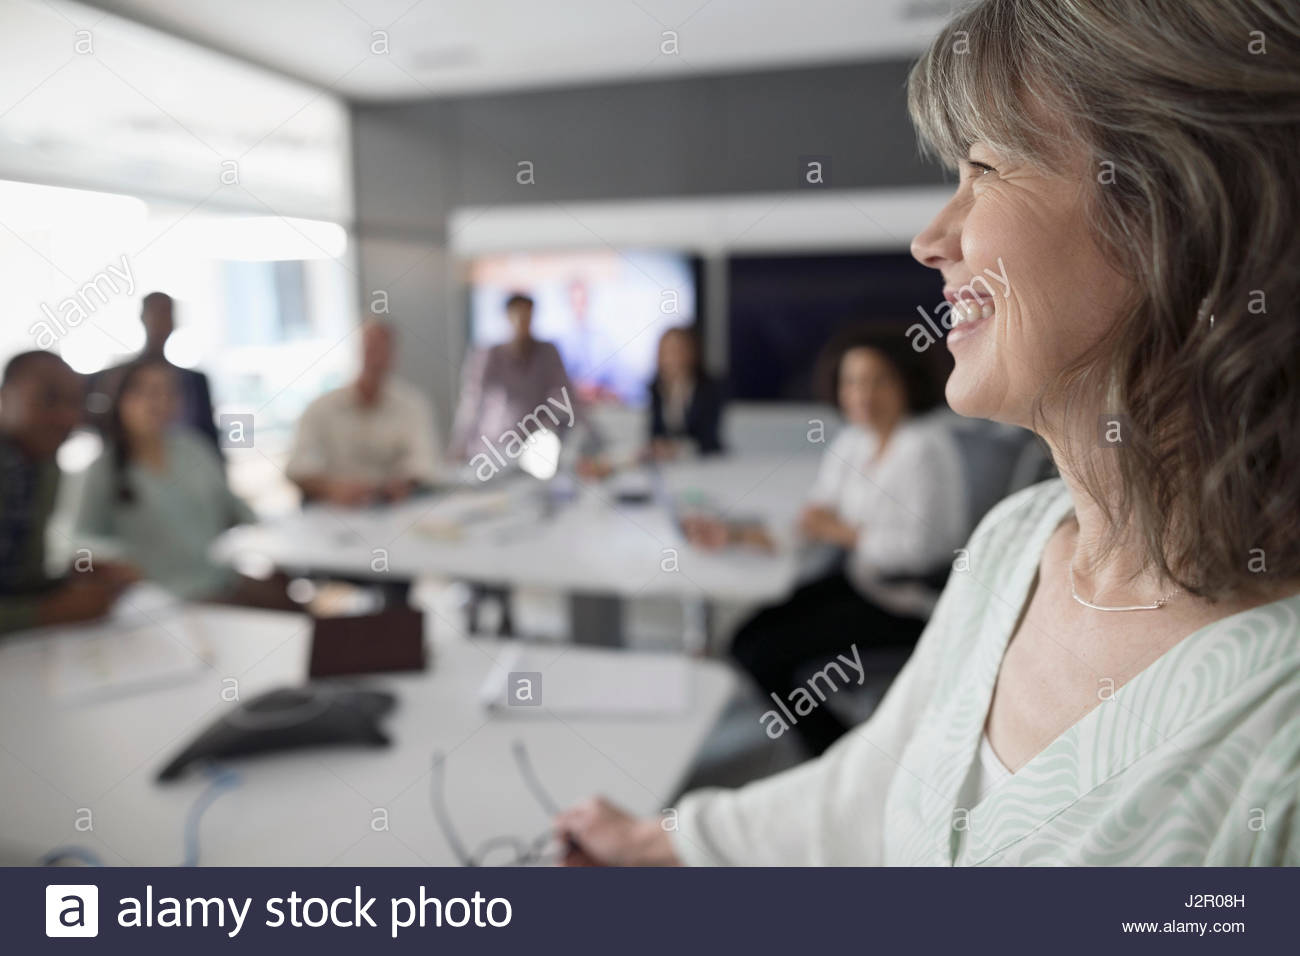 Smiling businesswoman leading conference room meeting - Stock Image